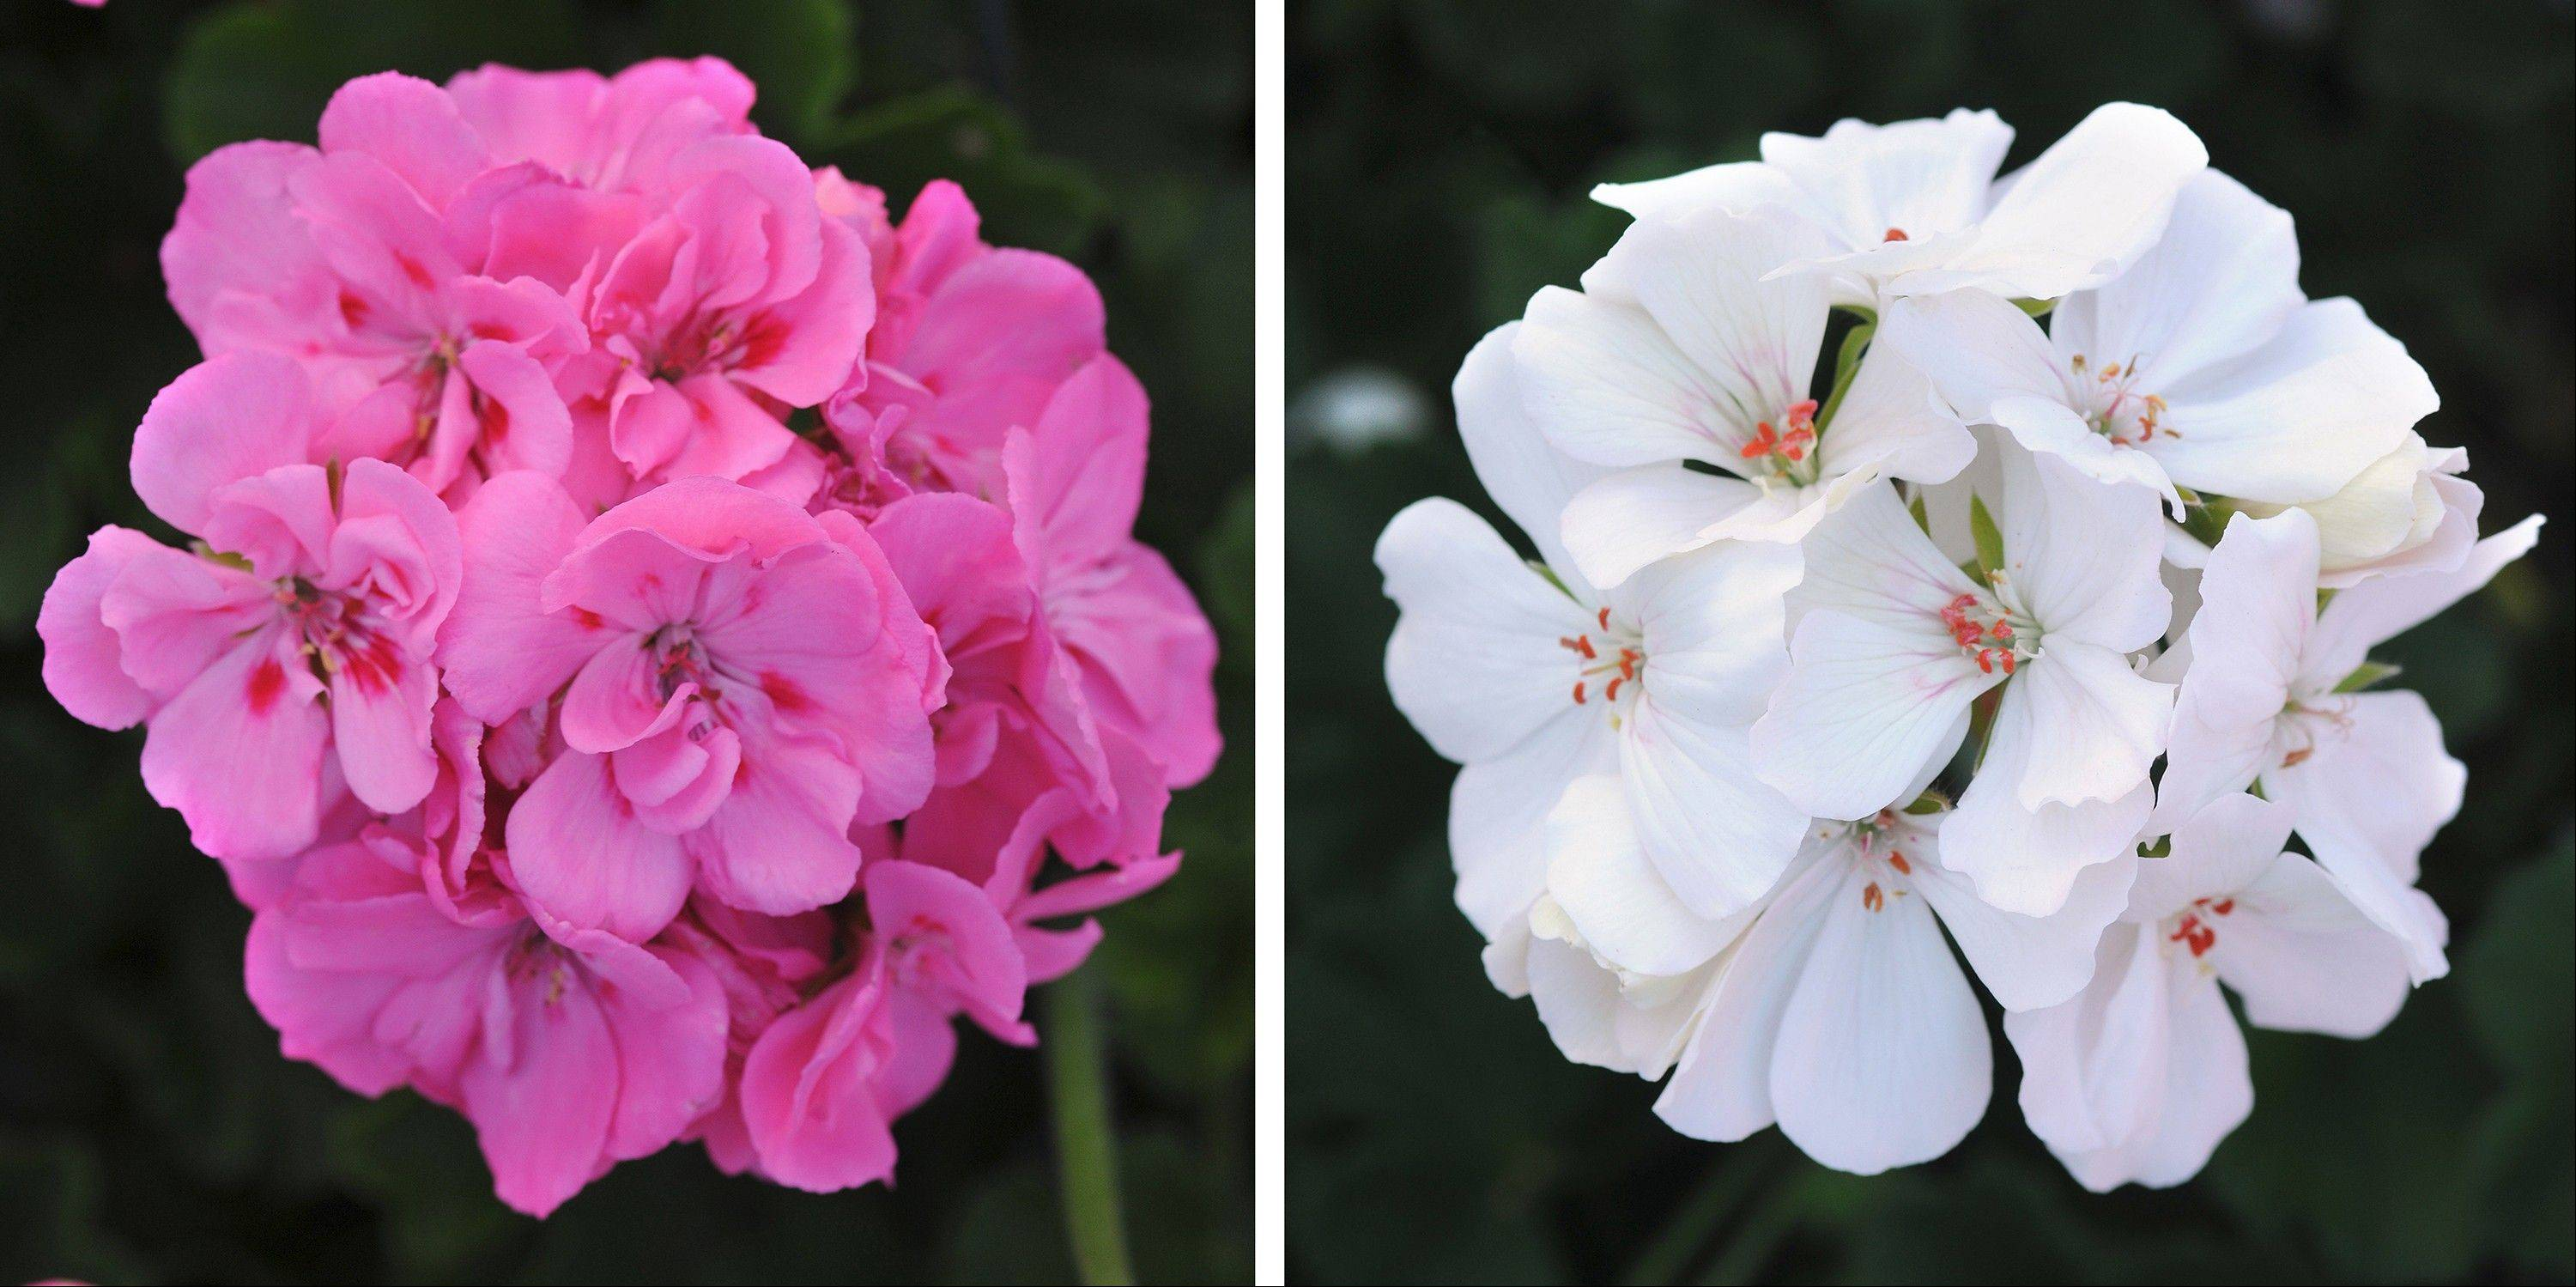 Left, Ball Horticultural's Double Take Pink Plus Eye; right, Ball Horticultural's Double Take White; Ball and other companies are part of a huge global industry of plant breeders, propagators, growers and retailers that have tapped into consumer interest in container gardening.